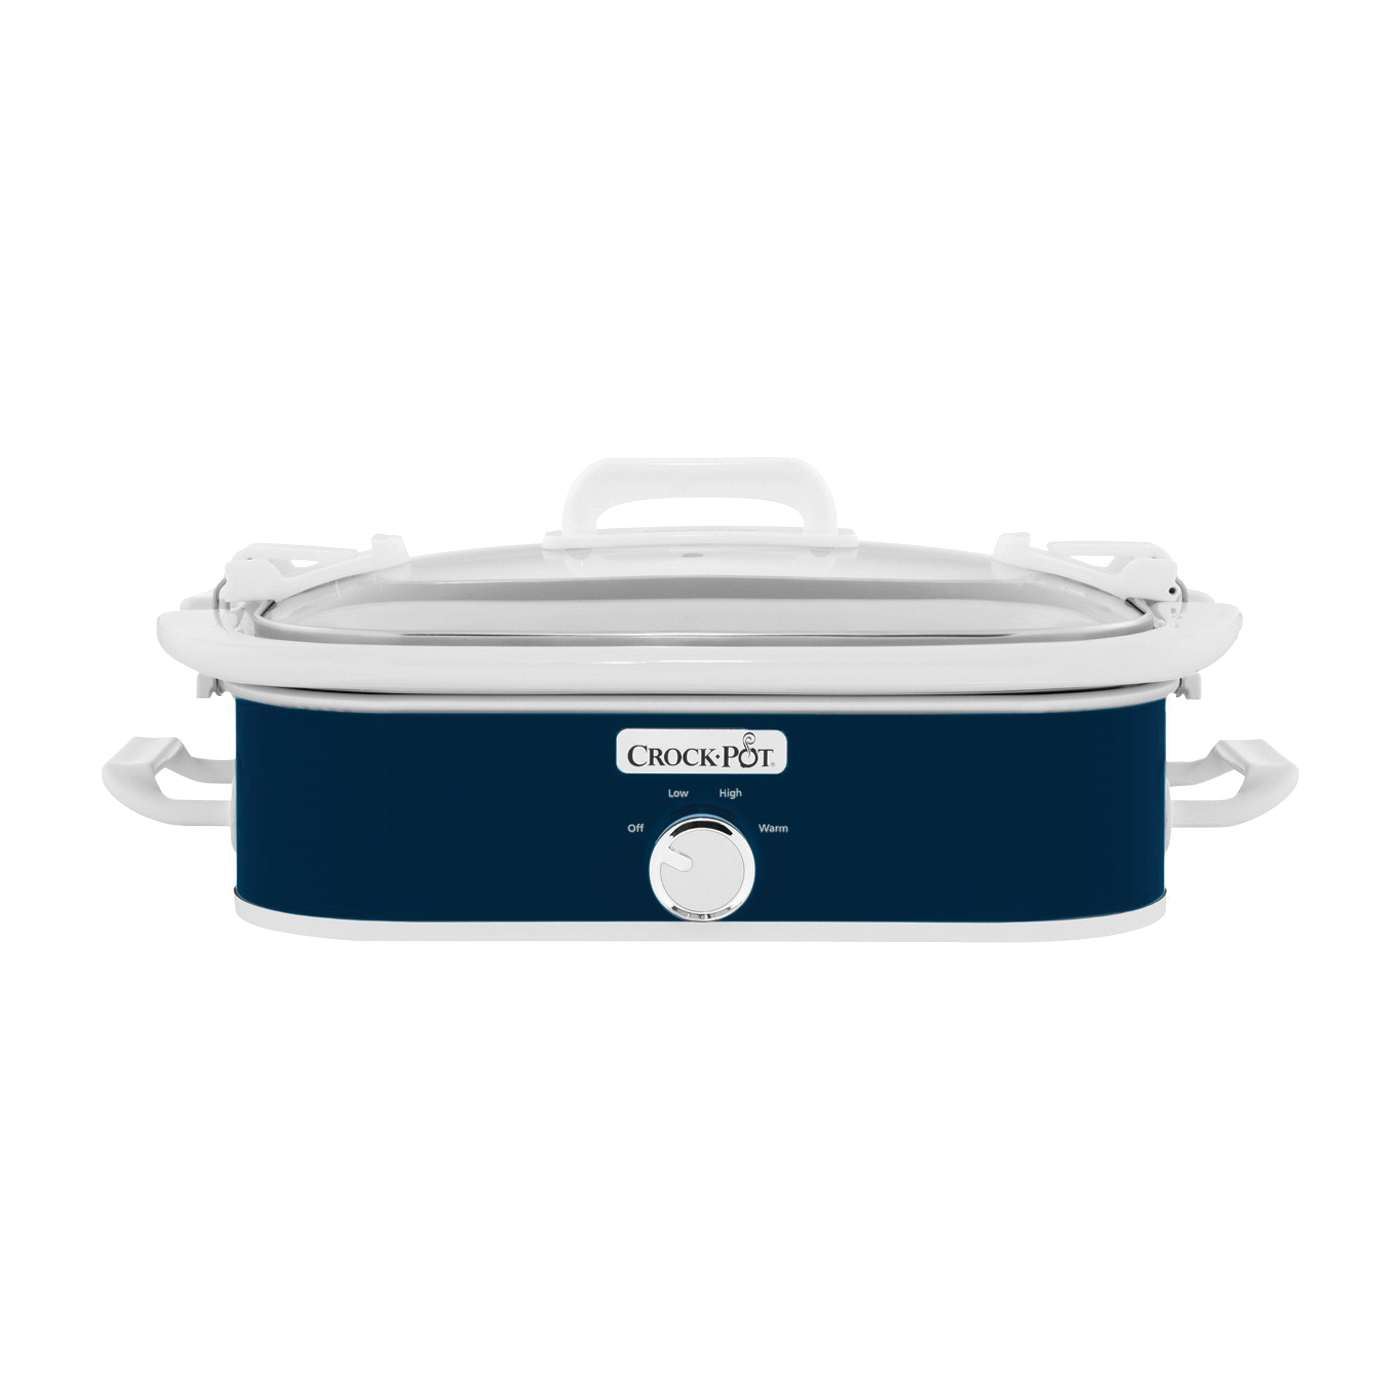 Picture of Crock-Pot Casserole Crock SCCPCCM350-BL Slow Cooker, 3.5 qt Capacity, Manual Control, Midnight Blue